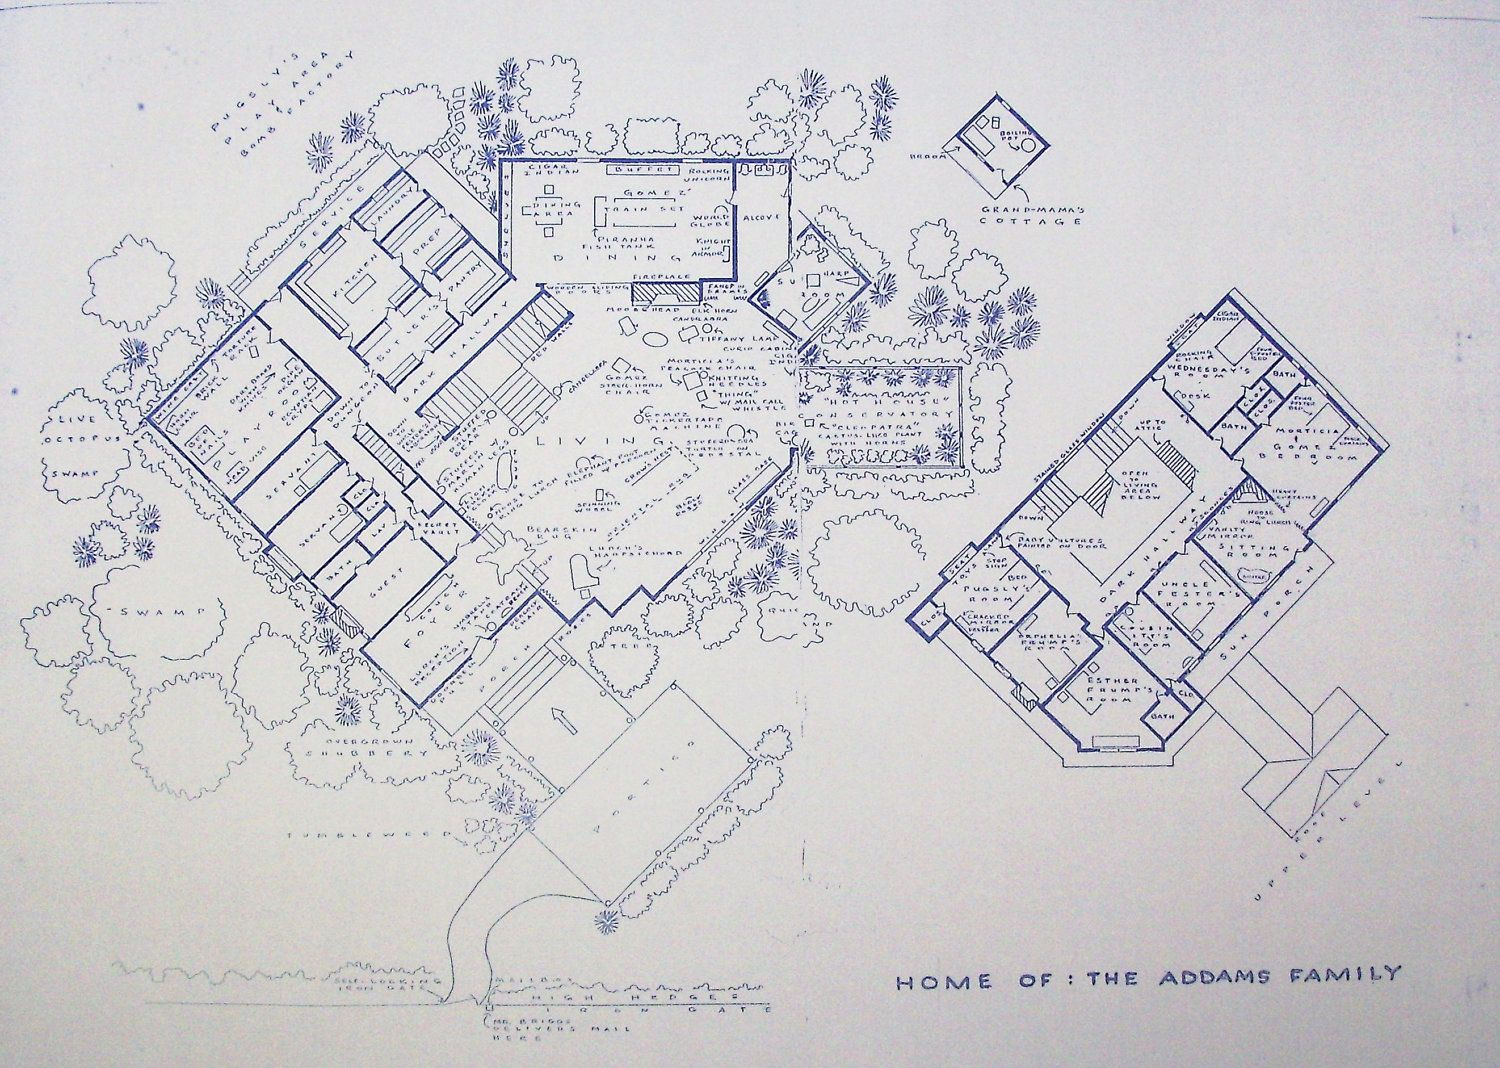 Wonderful 24 x 36 blueprint of the addams family house made the house from addams family tv show blueprint classic second empire with a tower and mansard roof malvernweather Image collections